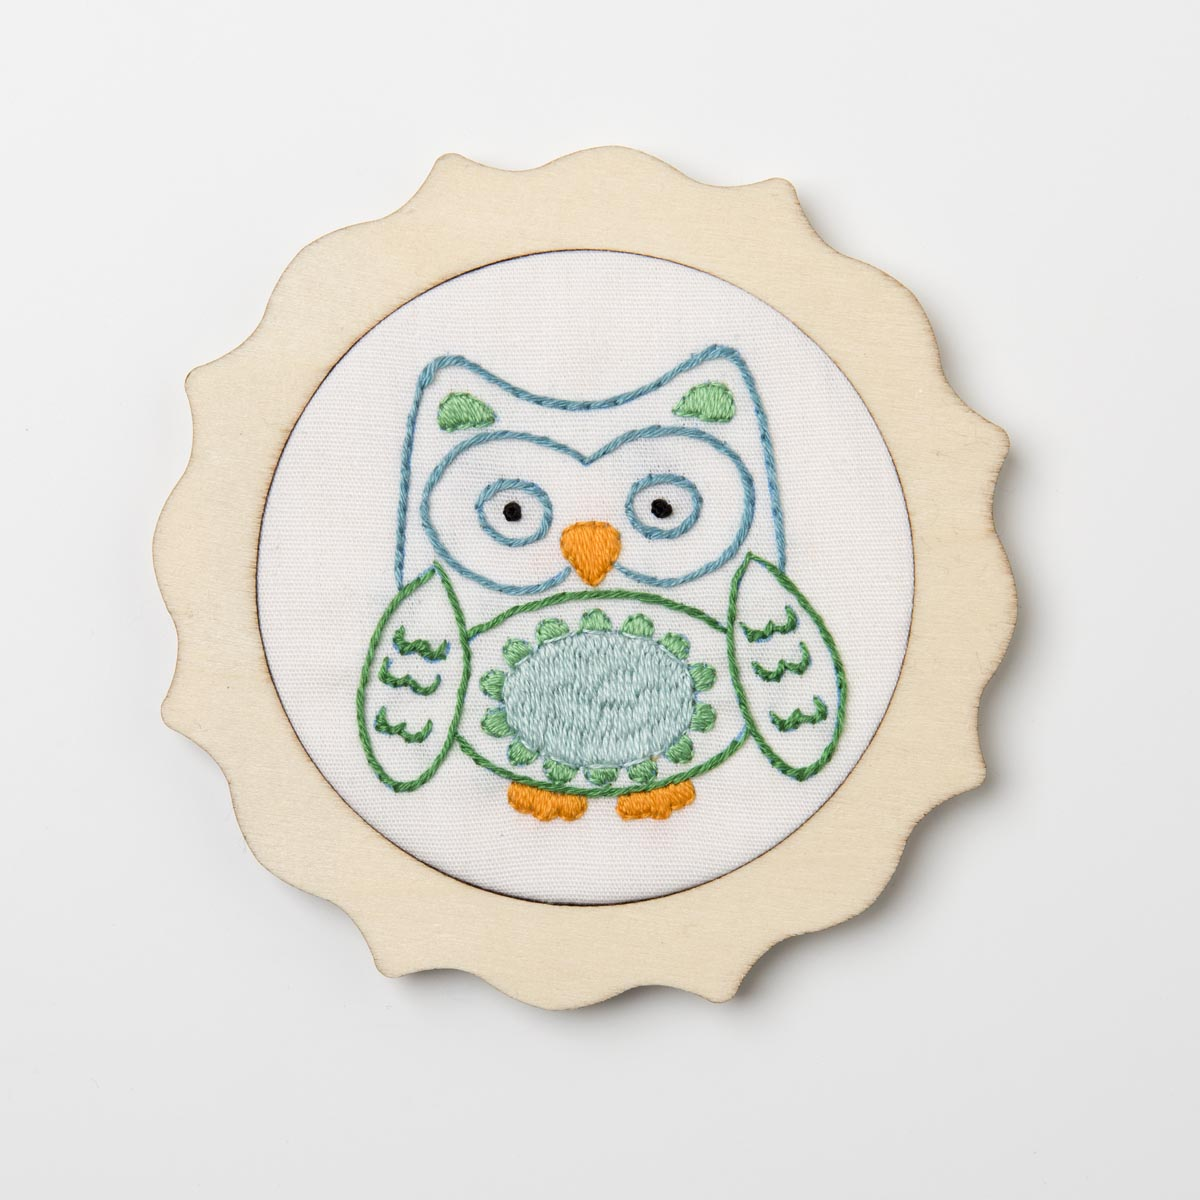 Bucilla ® My 1st Stitch™ - Stamped Embroidery Kits - Blue Owl